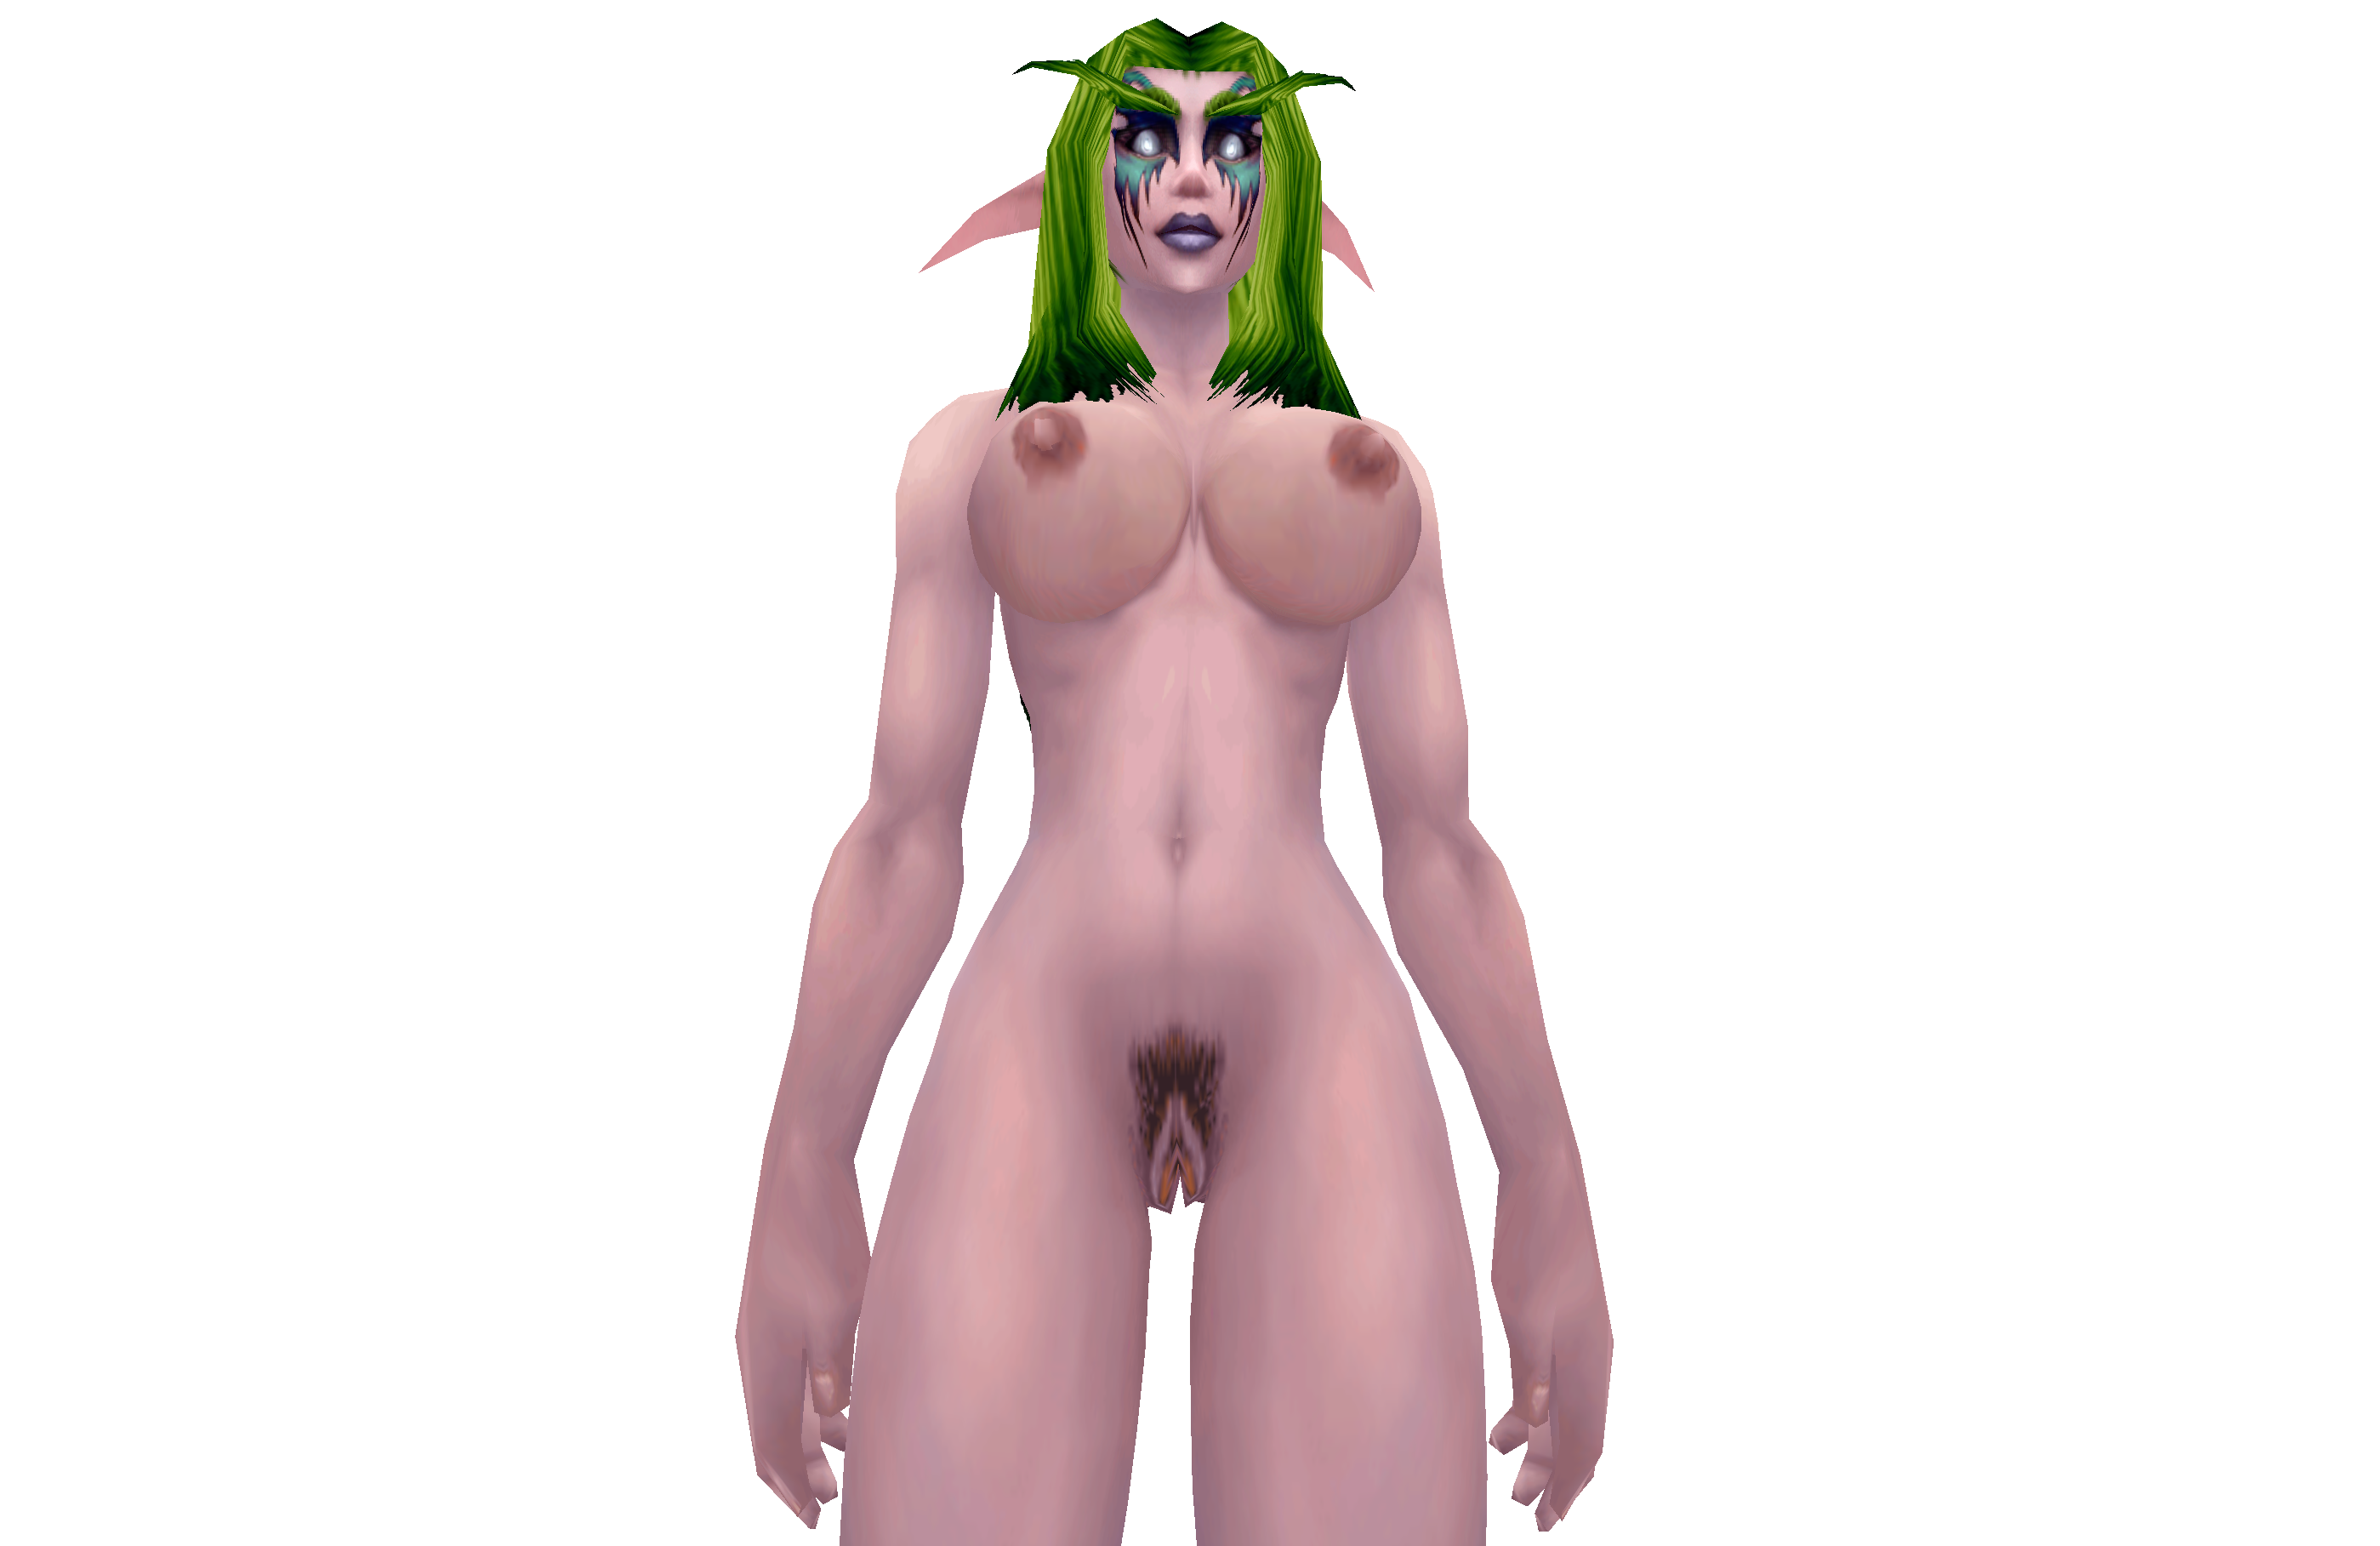 World of warcraft nude patches transparent fucks butt